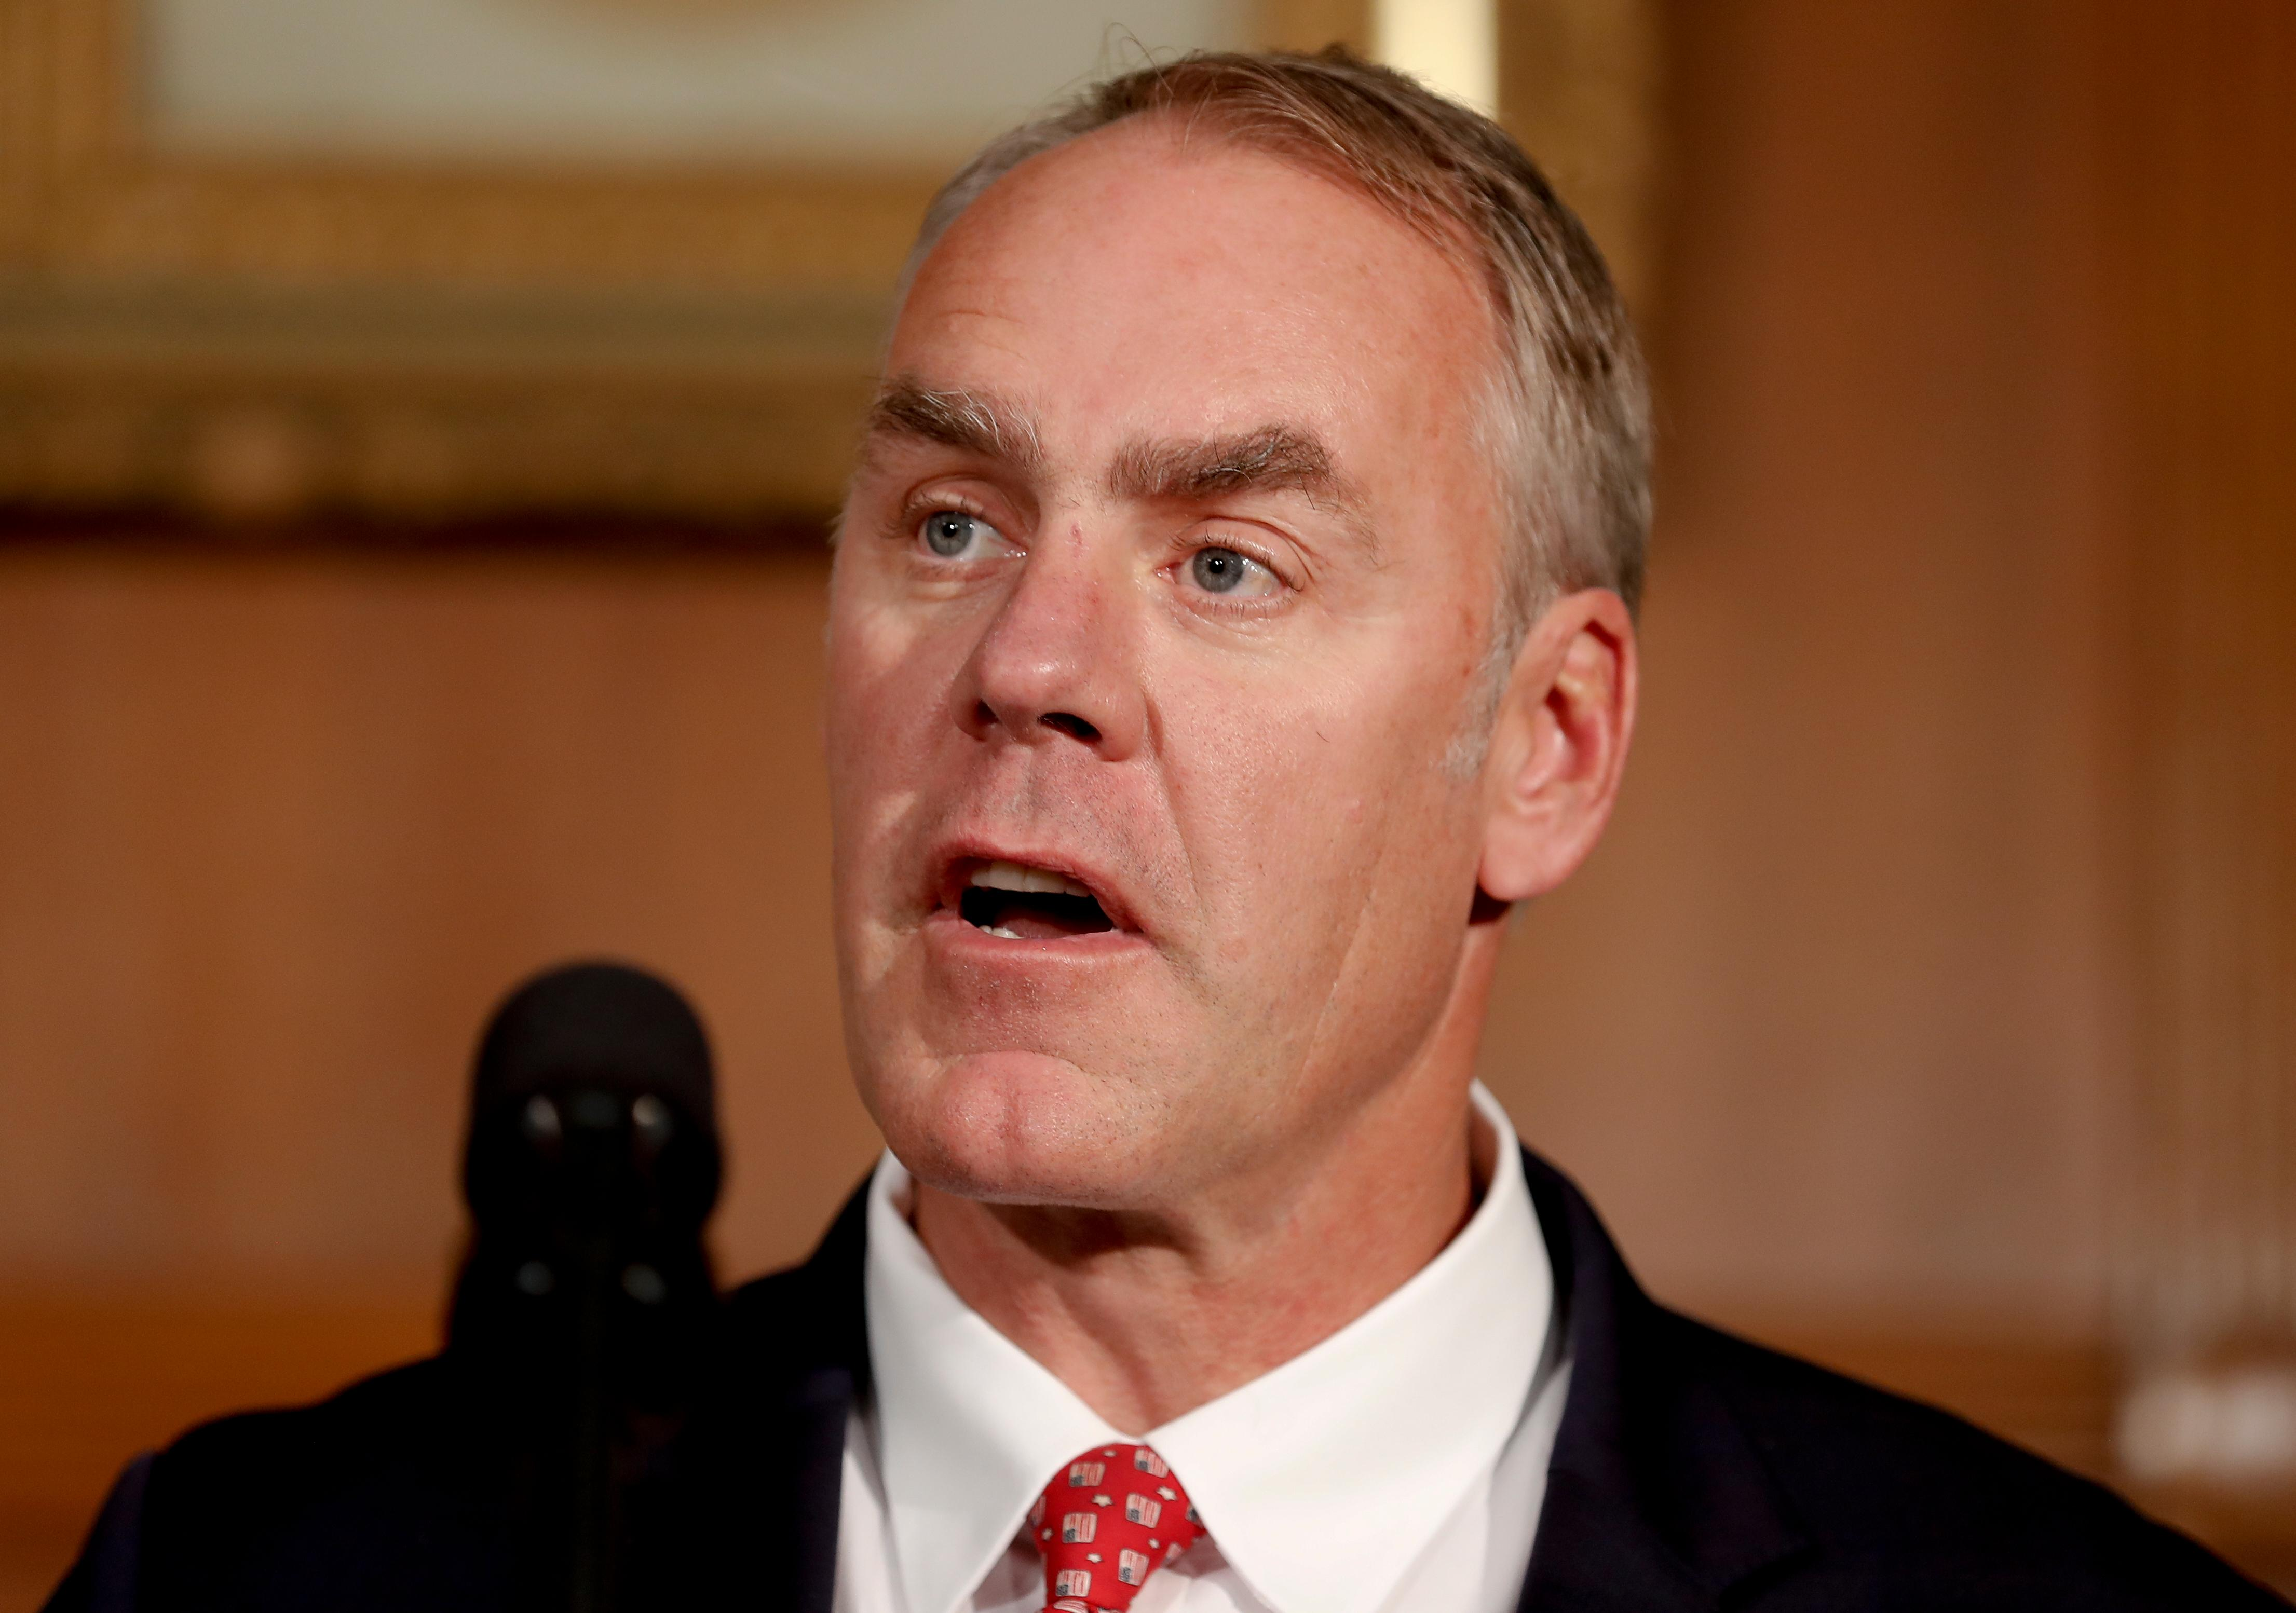 In this photo taken April 26, 2017, Interior Secretary Ryan Zinke speaks at the Interior Department in Washington. Ryan Zinke is recommending that the new Bears Ears National Monument in Utah be reduced in size and says Congress should step in to designate how selected areas of the 1.3 million-acre site are categorized.  (AP Photo/Carolyn Kaster)